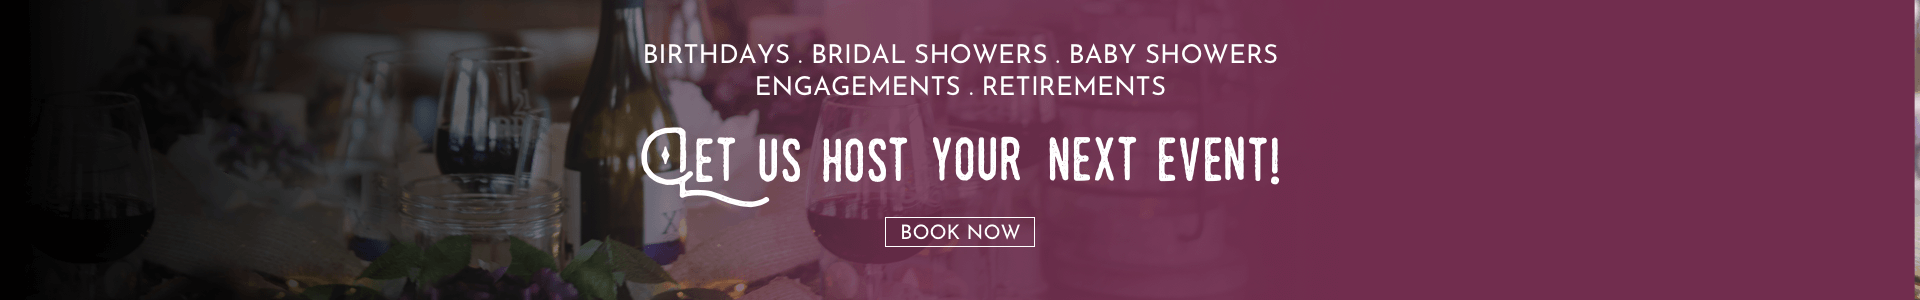 Let Us Host Your Next Event - Book Now!